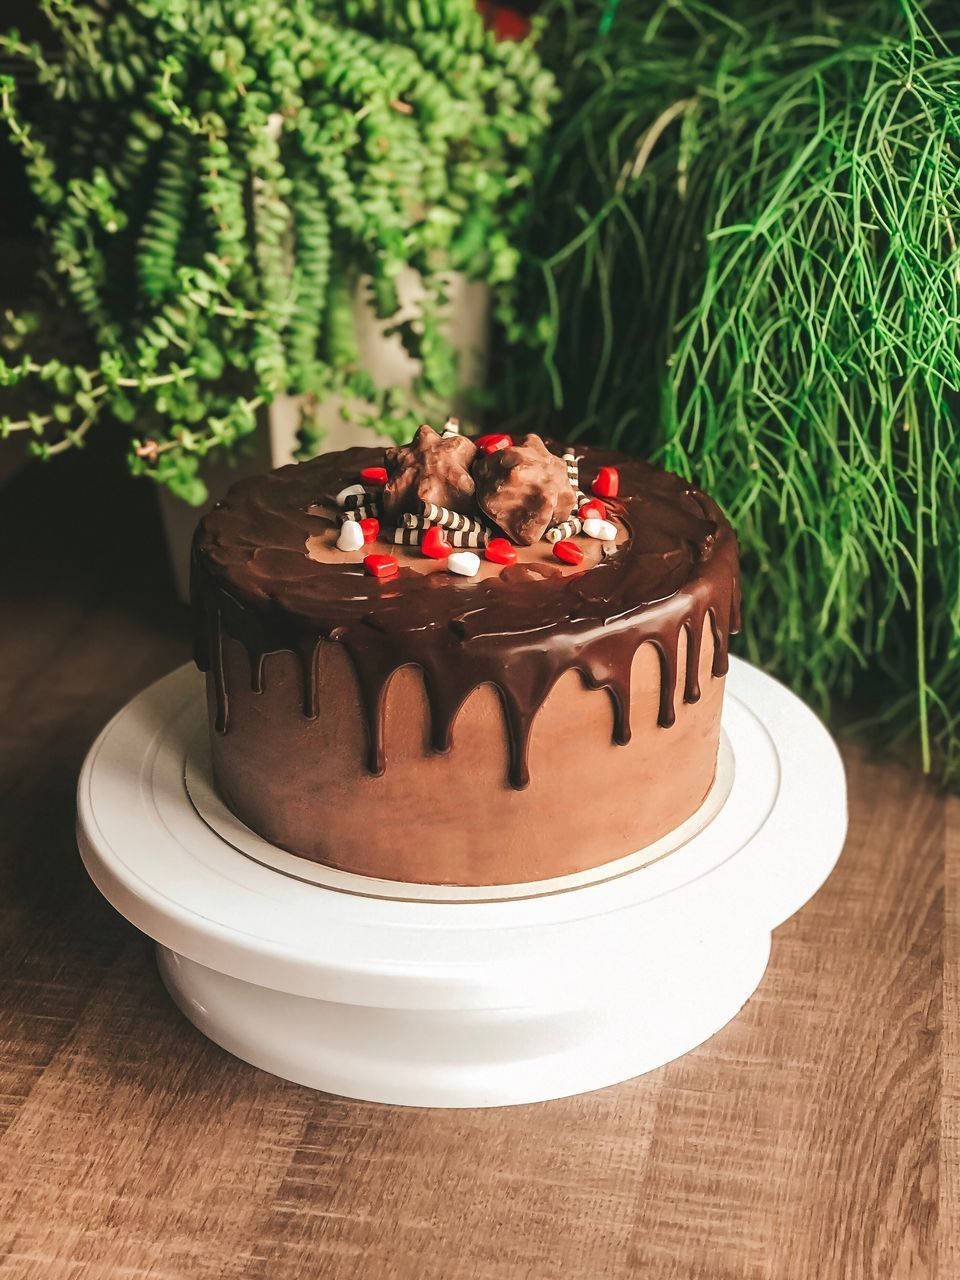 food, food and drink, sweet food, baked, cake, dessert, sweet, freshness, temptation, indulgence, no people, table, ready-to-eat, indoors, close-up, still life, focus on foreground, plate, plant, celebration, chocolate cake